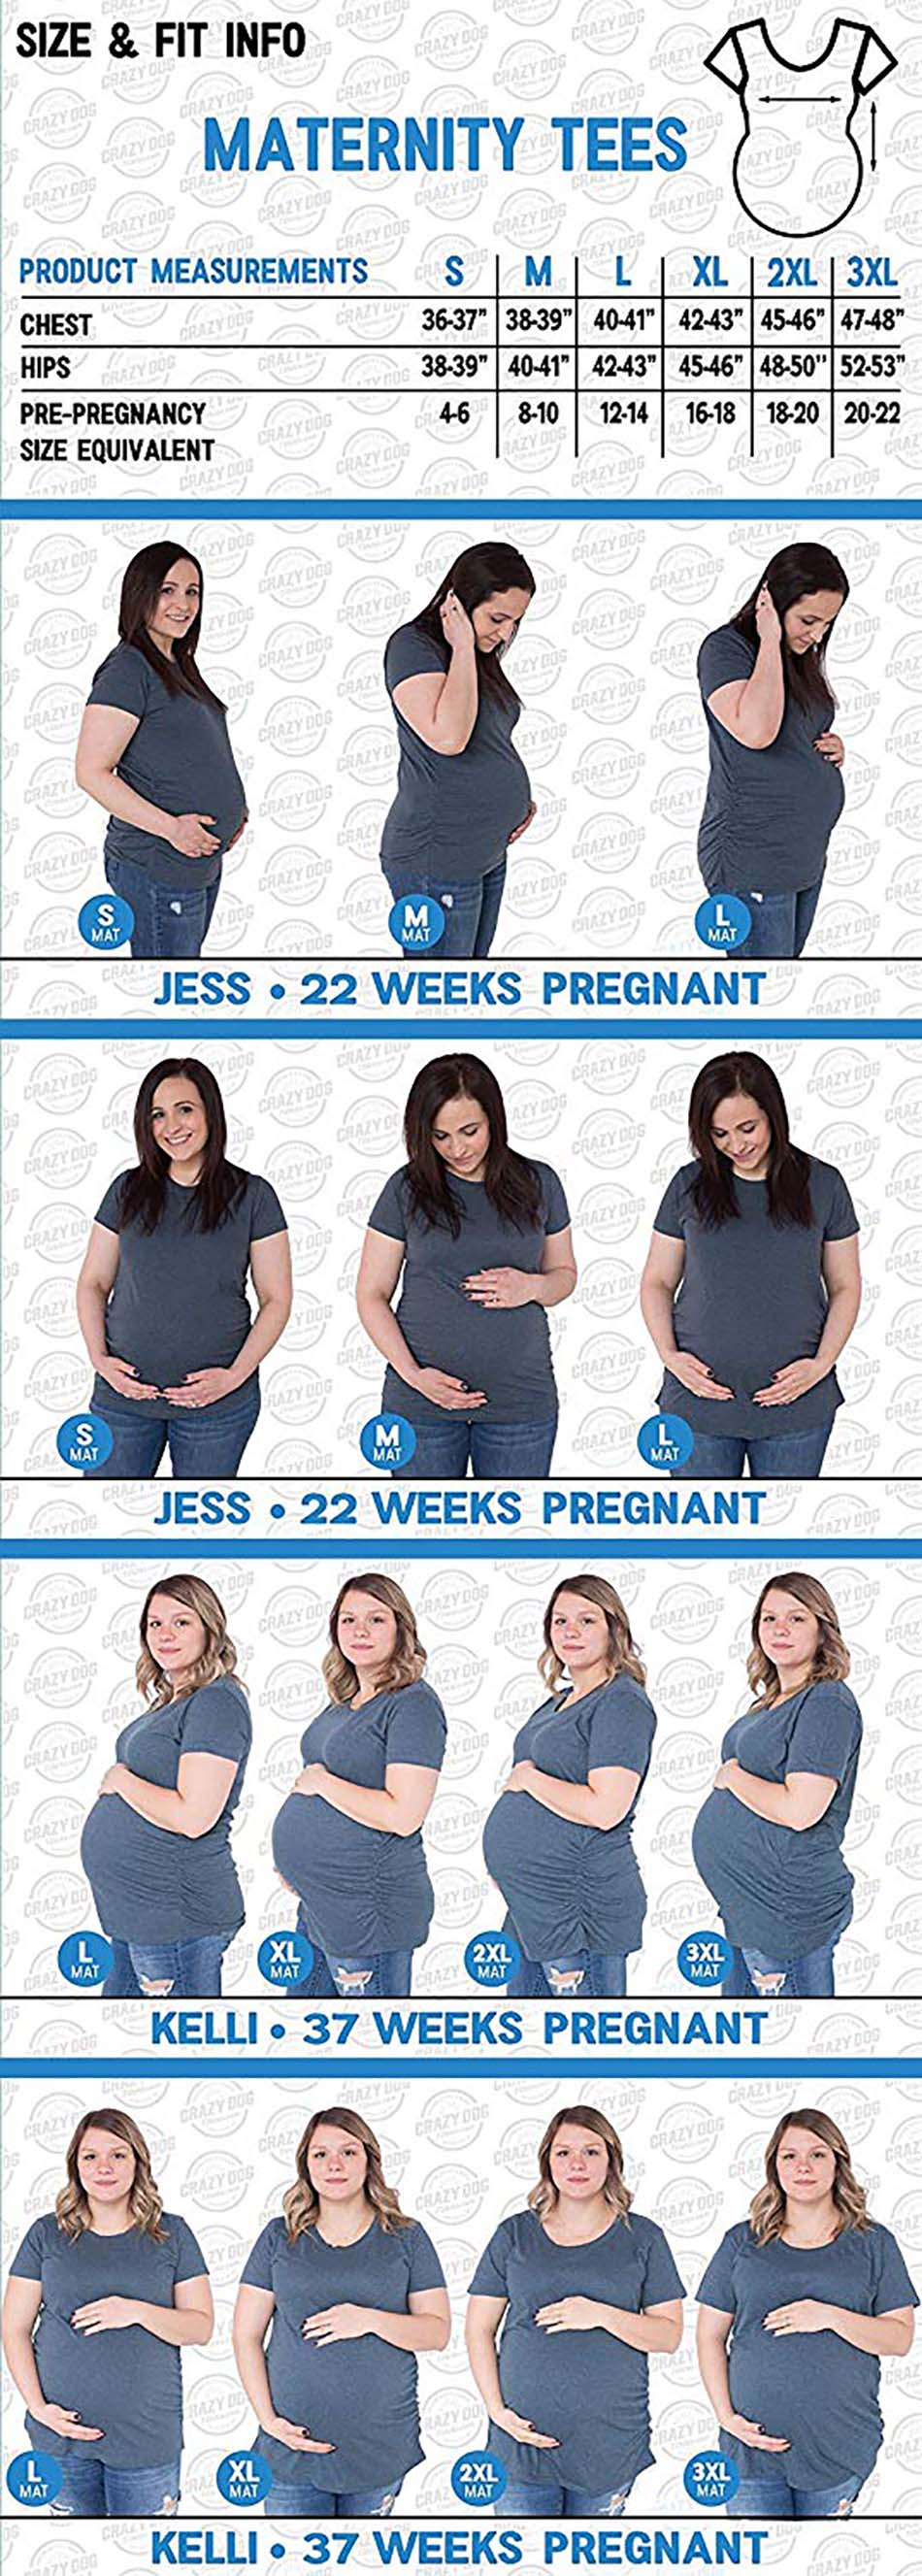 ffe6cc00dde3f Baby is Coming Maternity T Shirt Tops Mama Clothes Women Calendar Countdown Pregnancy  Tee Mark Off Baby Announcment Tshirt-in Tees from Mother & Kids on ...